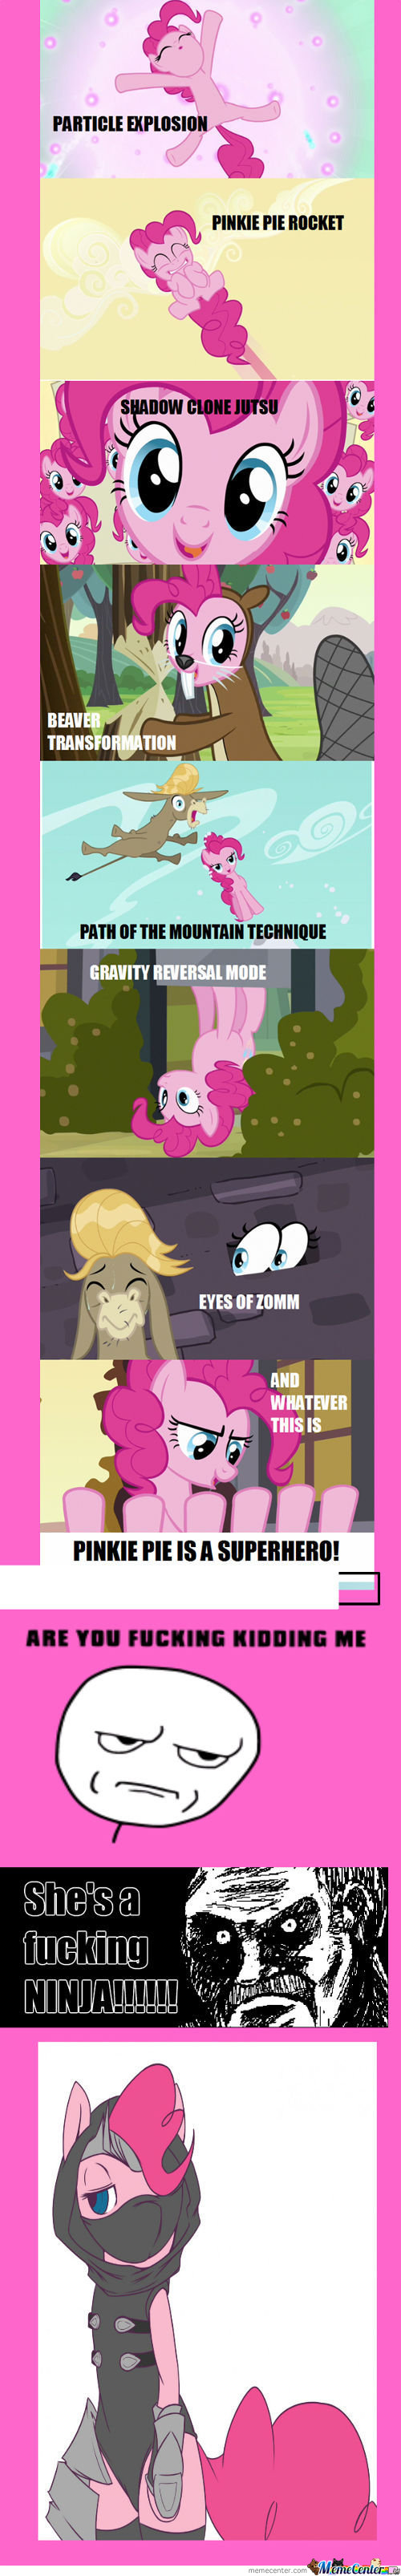 Wrong About Pinkie Pie